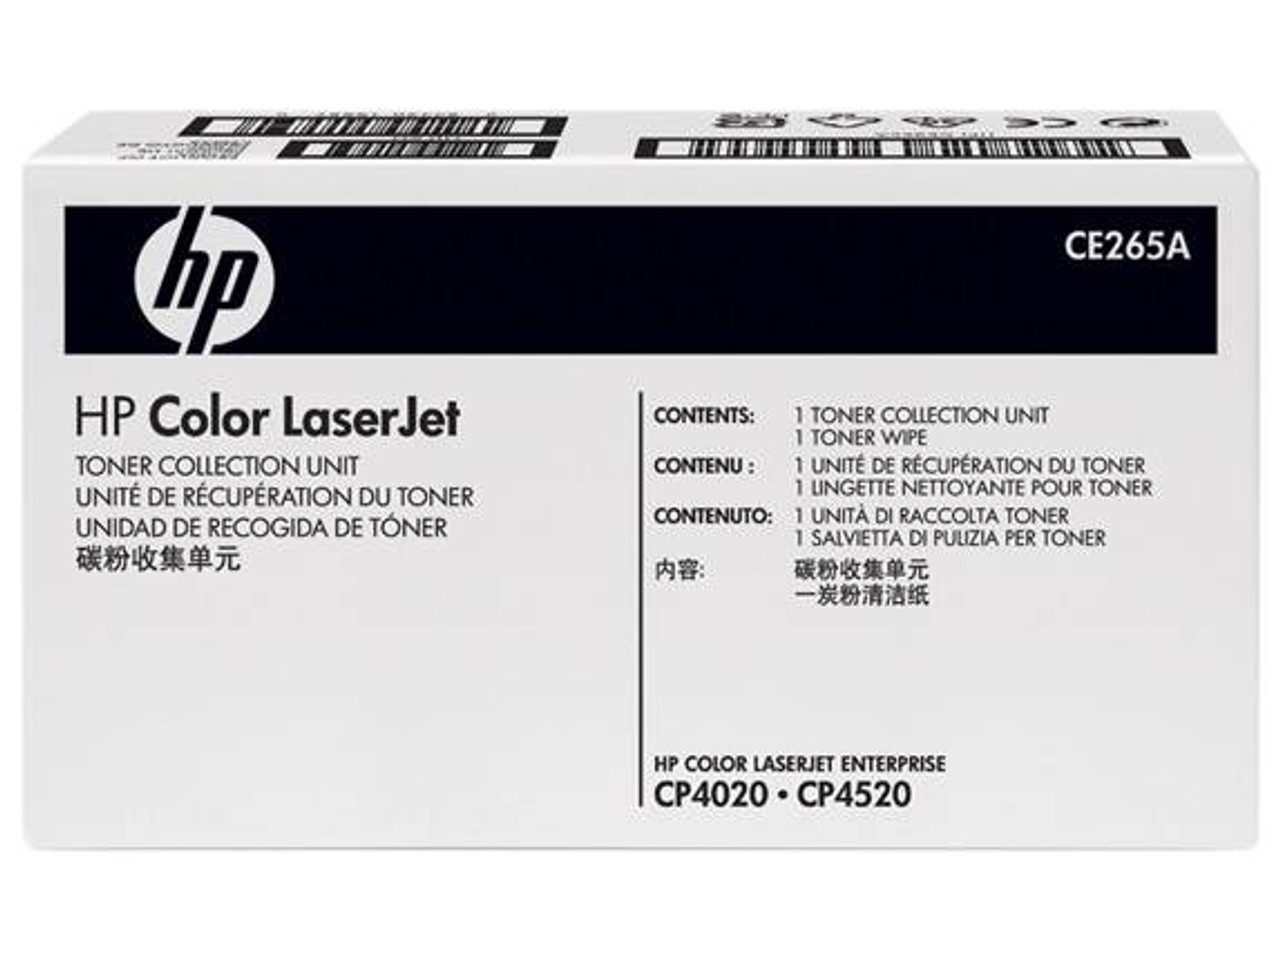 Image for HP CE265A 648A Toner Collection Unit for HP Printers CX Computer Superstore